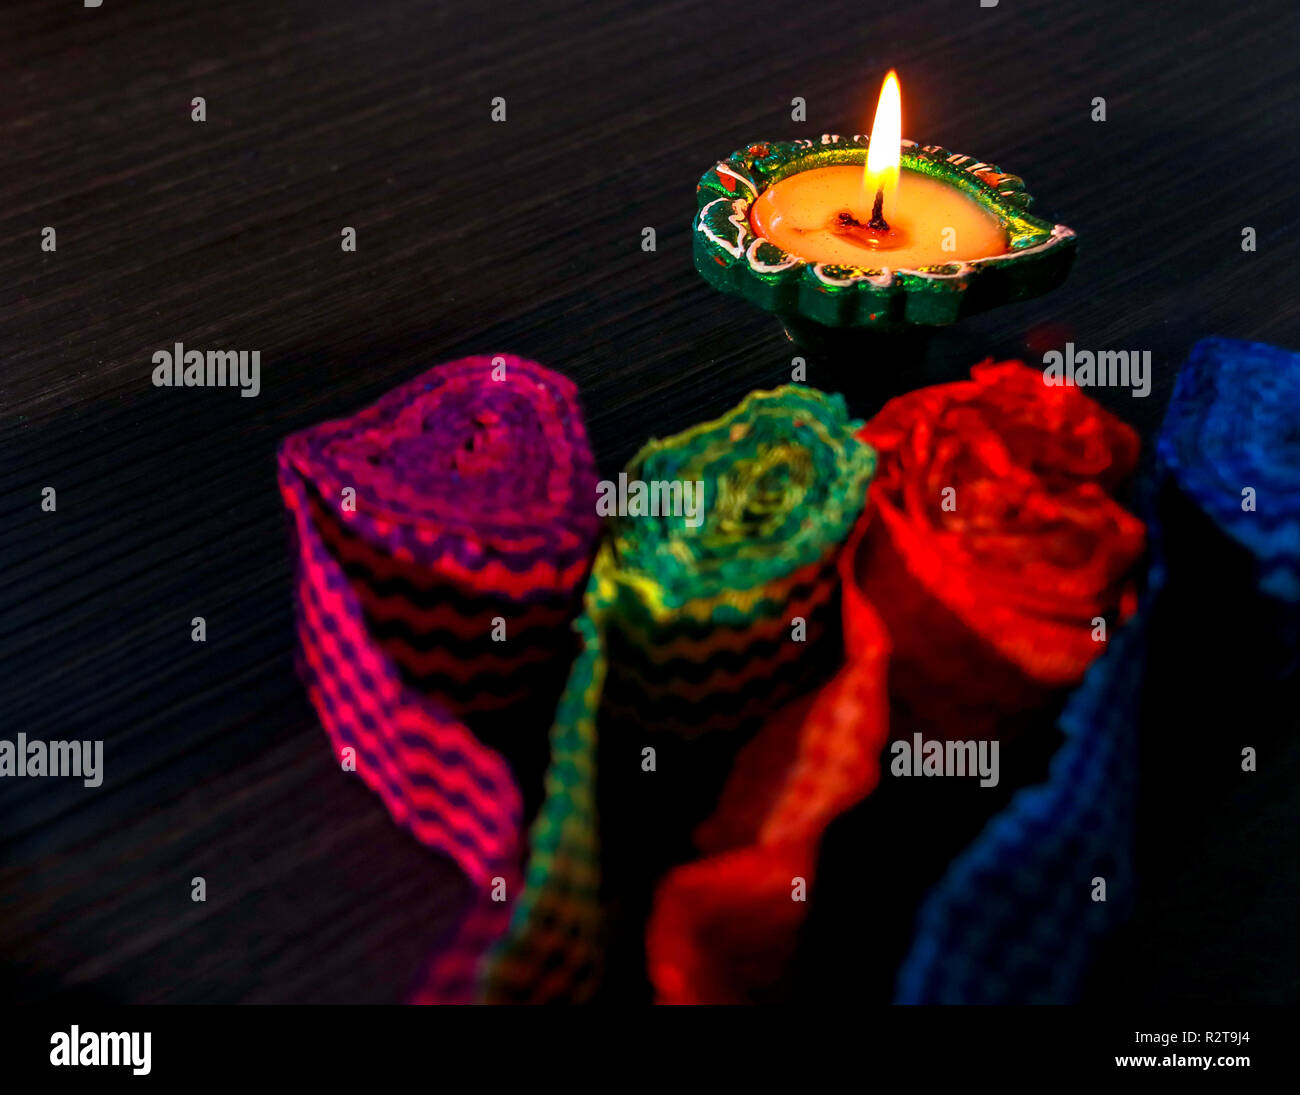 A typical view of diya arranged for celebrating diwali and dhanteras in Asia Stock Photo